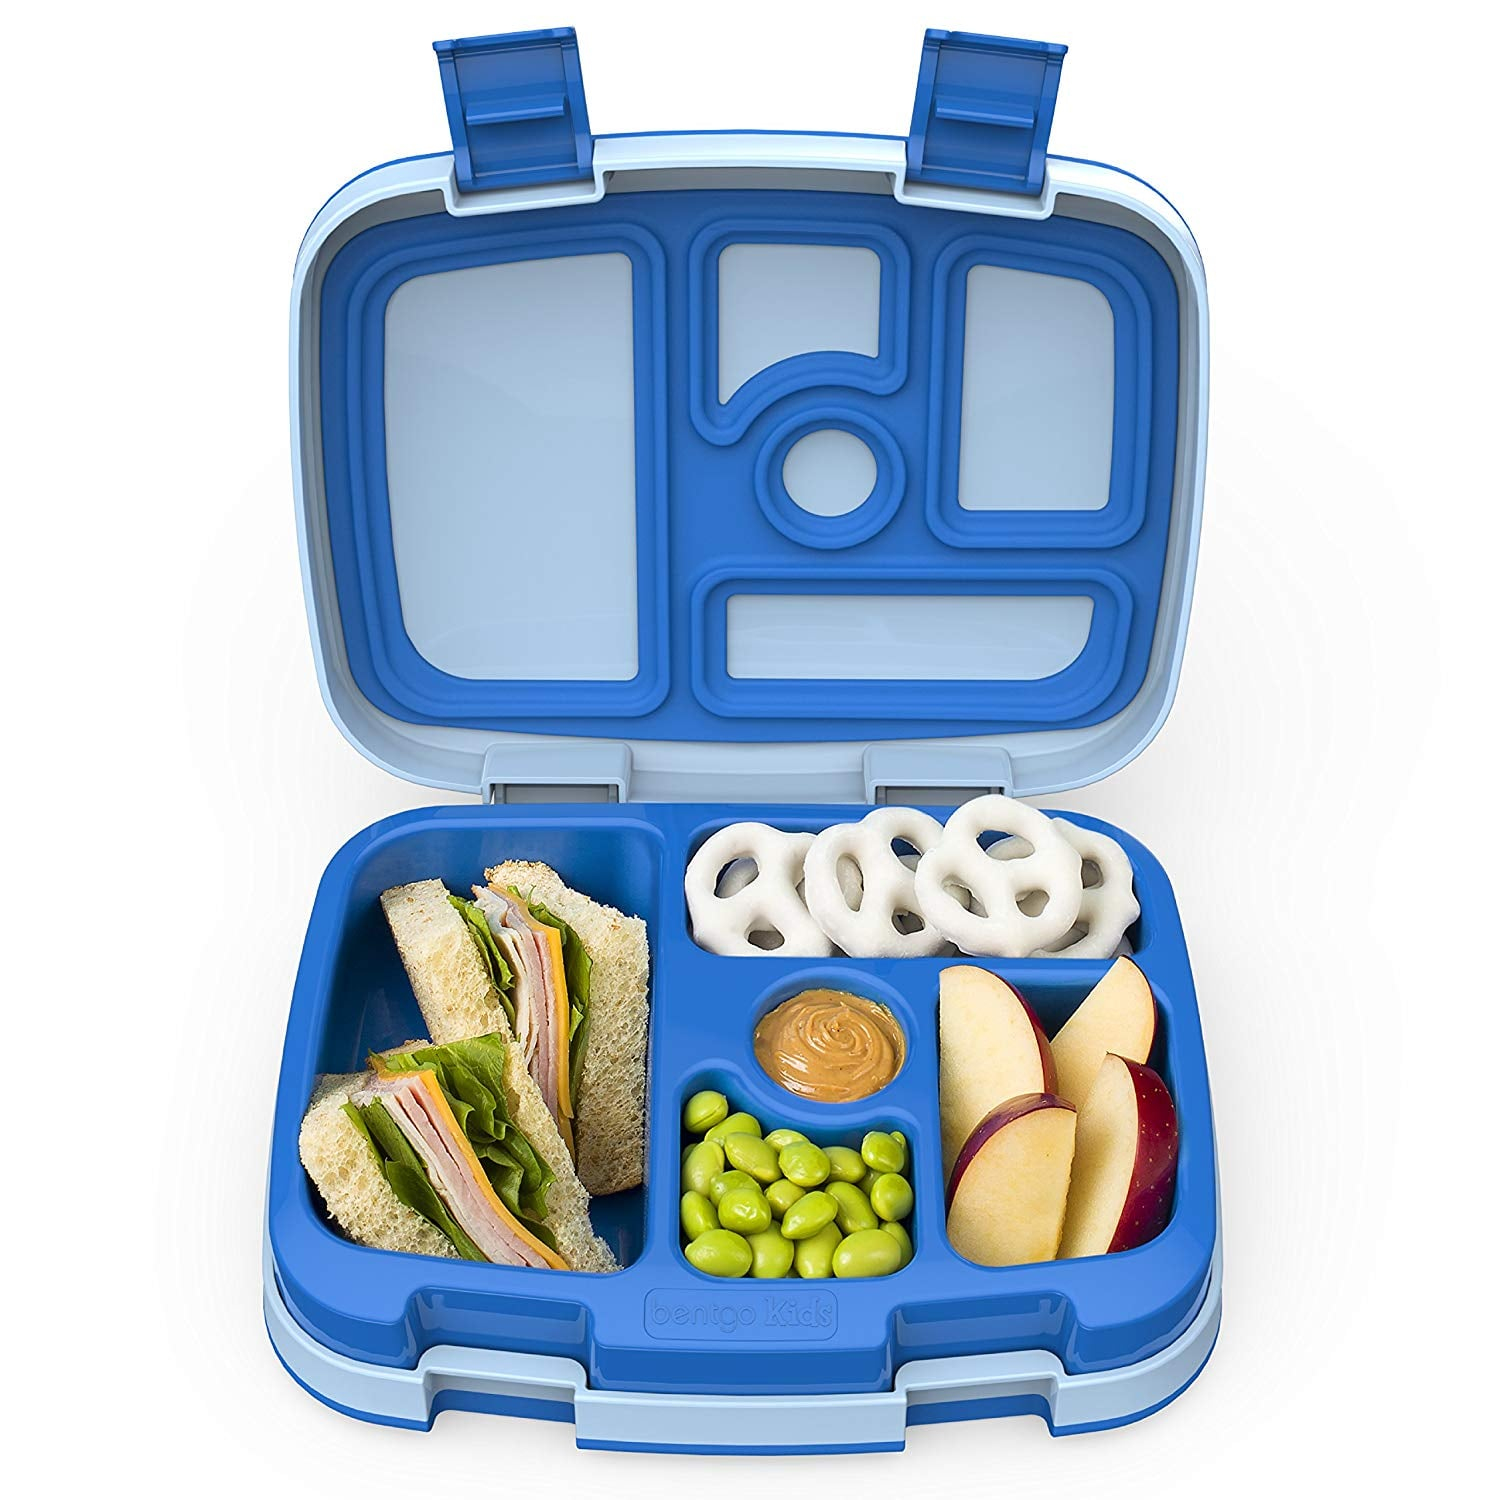 We Can See Why This Is the Bestselling Lunchbox on Amazon